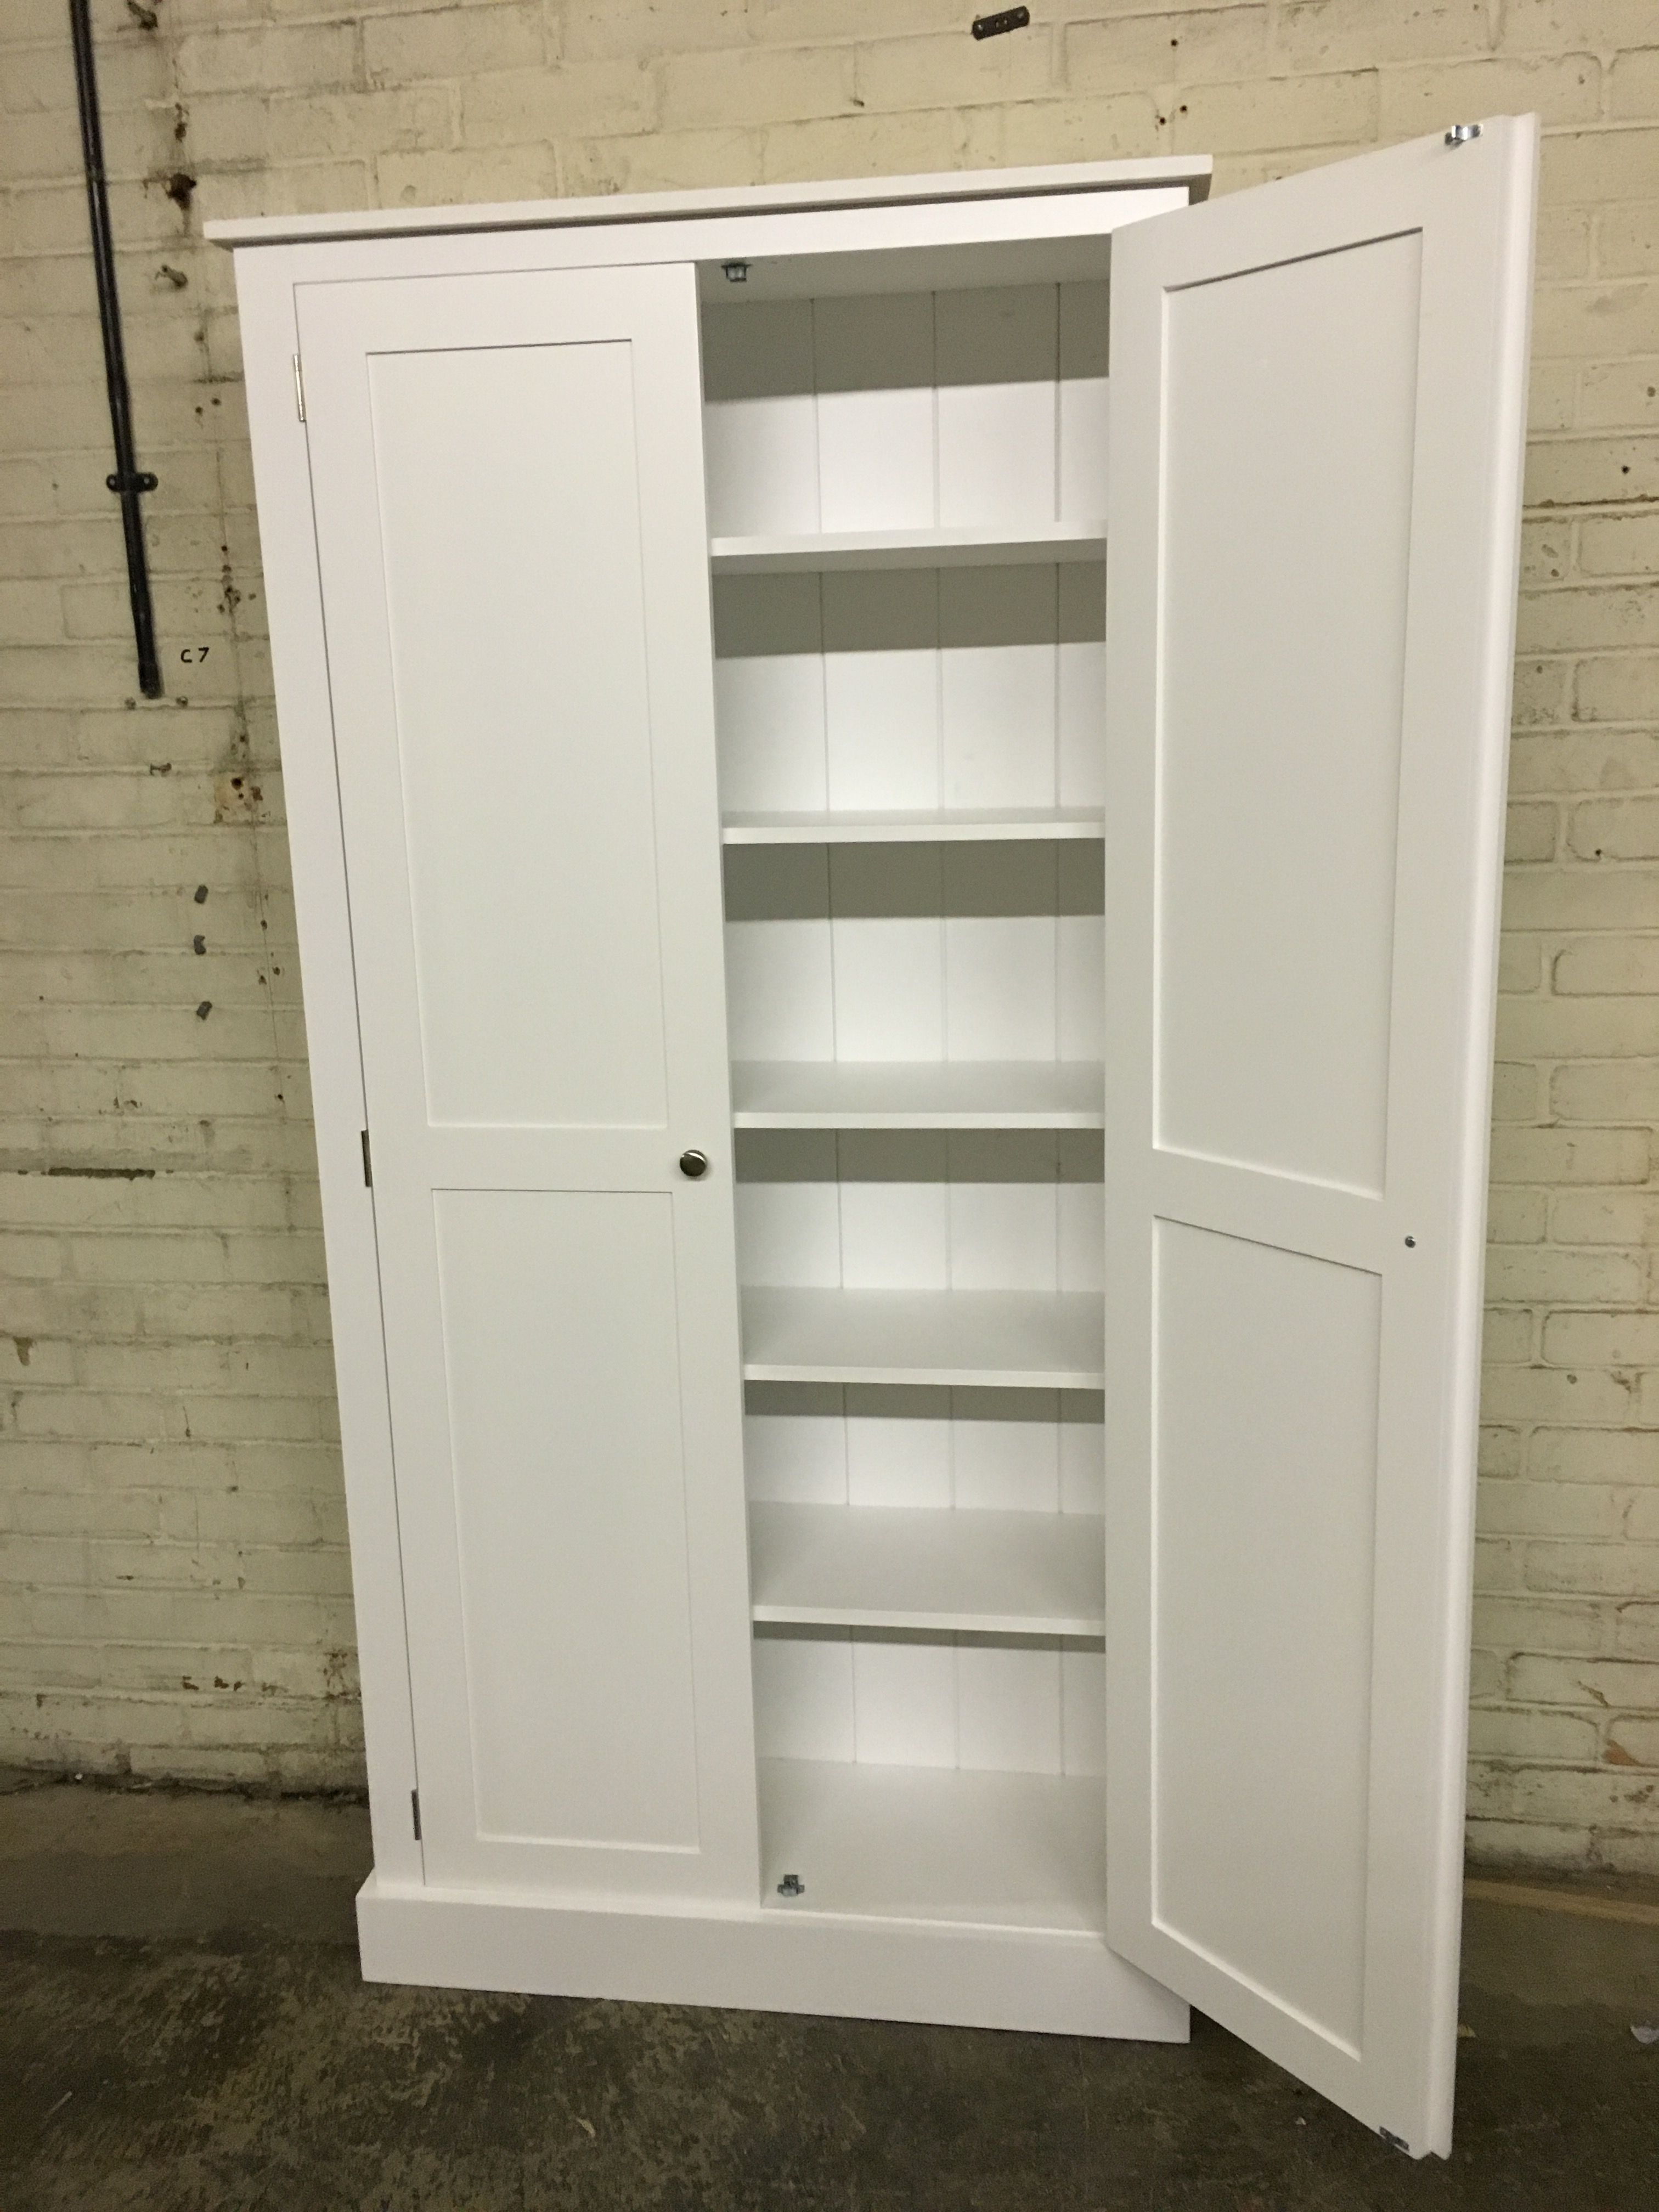 Housekeepers Cupboard In White From Cobwebs Furniture Company.